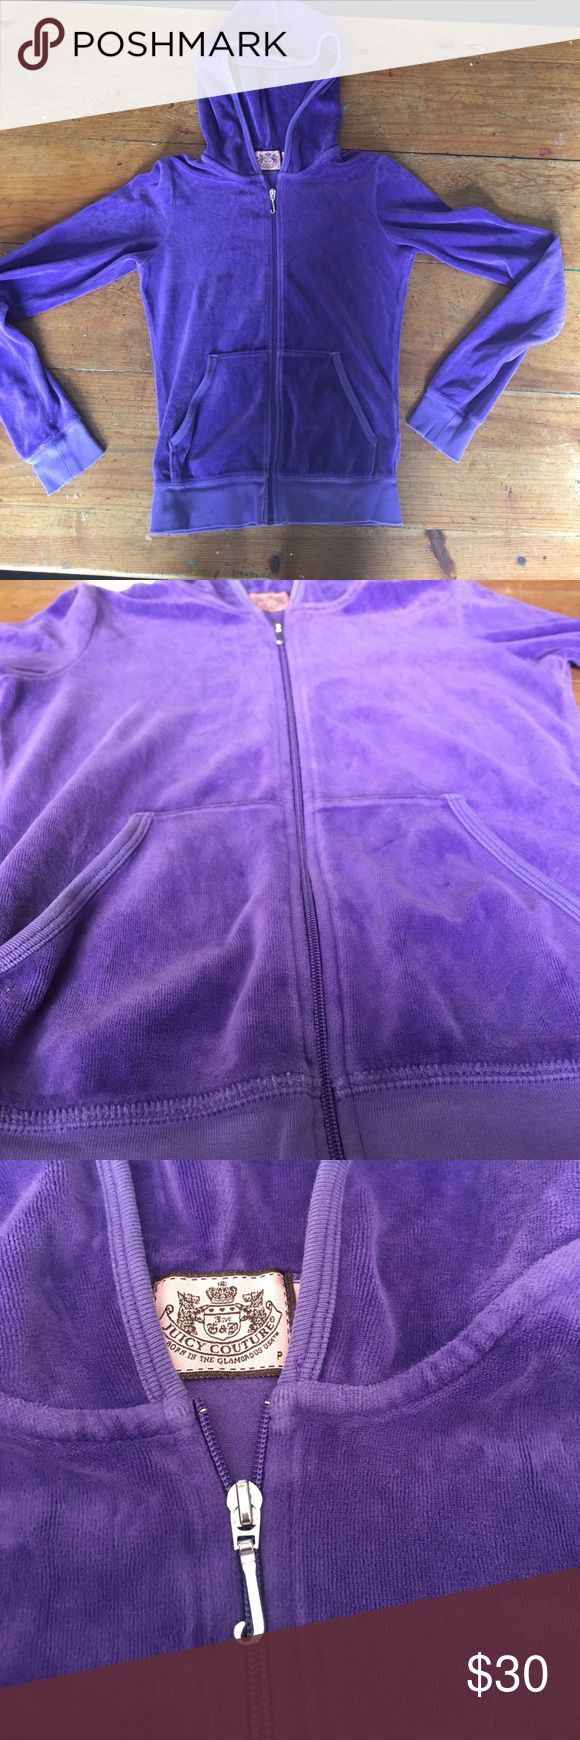 Velour Juicy couture hoodie size p Cute purple zip up hoodie size P. Great condition Juicy Couture Other